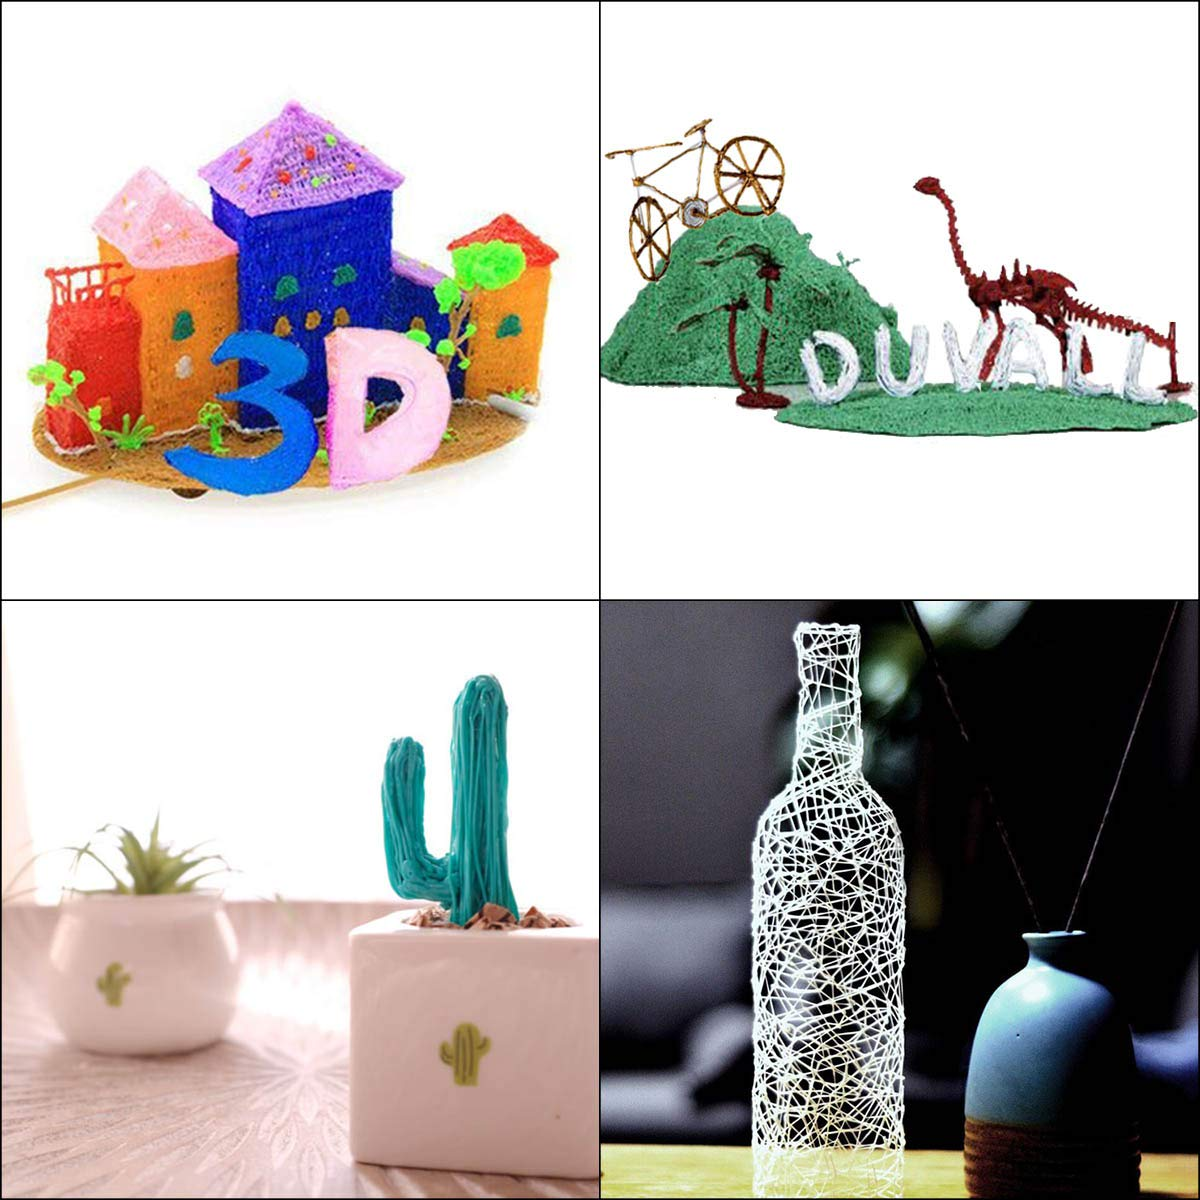 INKERSCOOP 3D Pen,3D Printing Pen Children Gifts 3D Art Educational Painting Pen for Kids, Adults